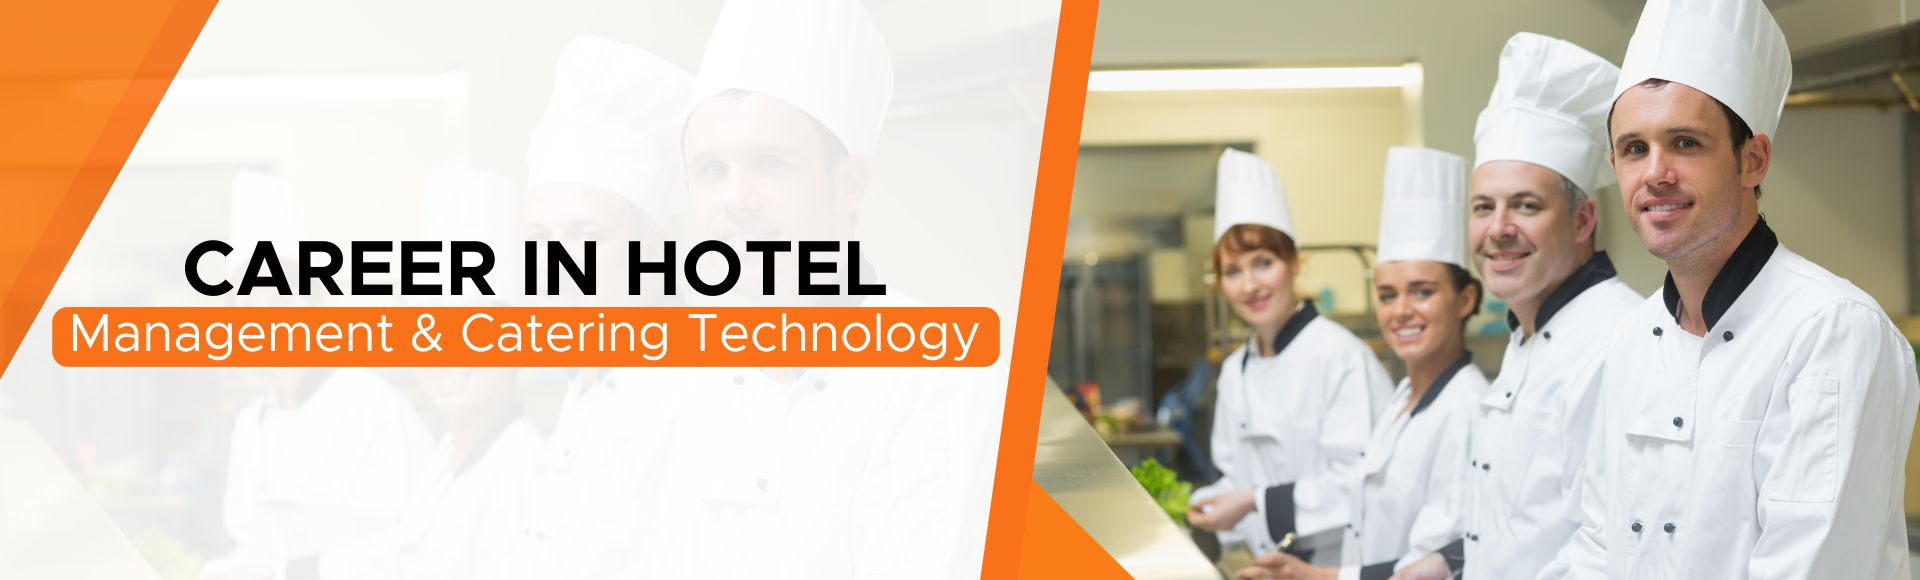 Career in Hotel Management & Catering Technology